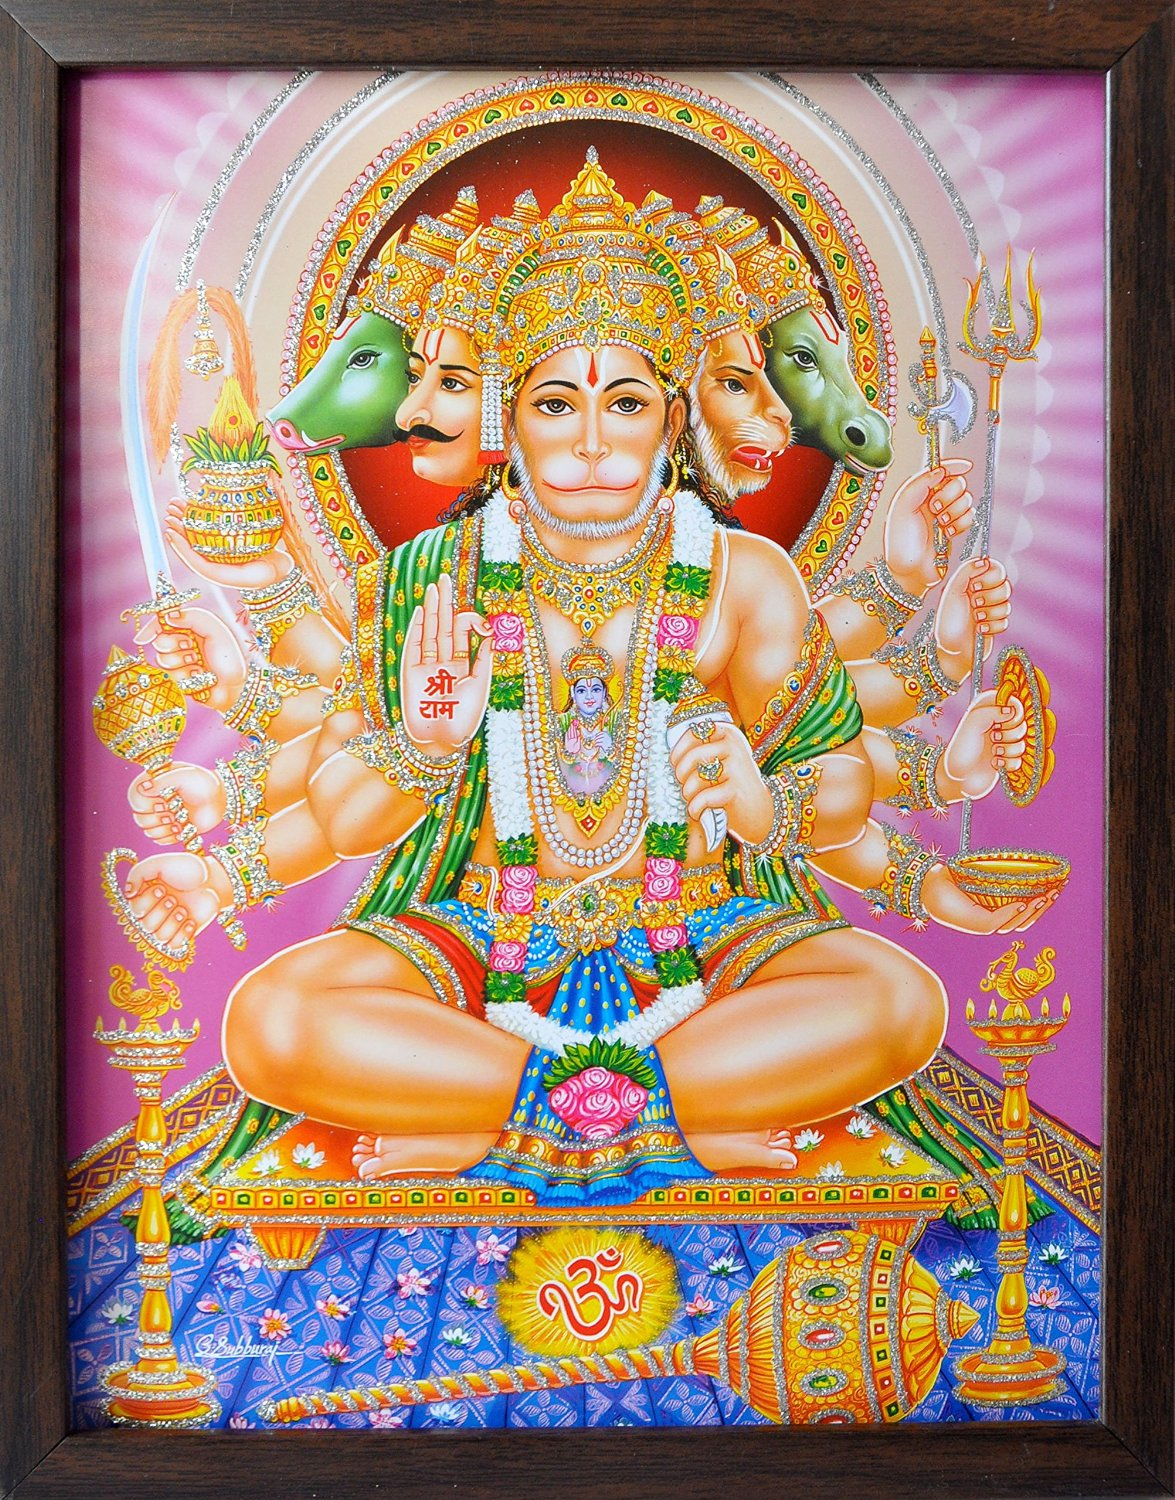 Lord Hanuman with five faces and ten hands holding weapons and giving blessings, A Holy Hindu Religious Poster painting with frame for Worship purpose